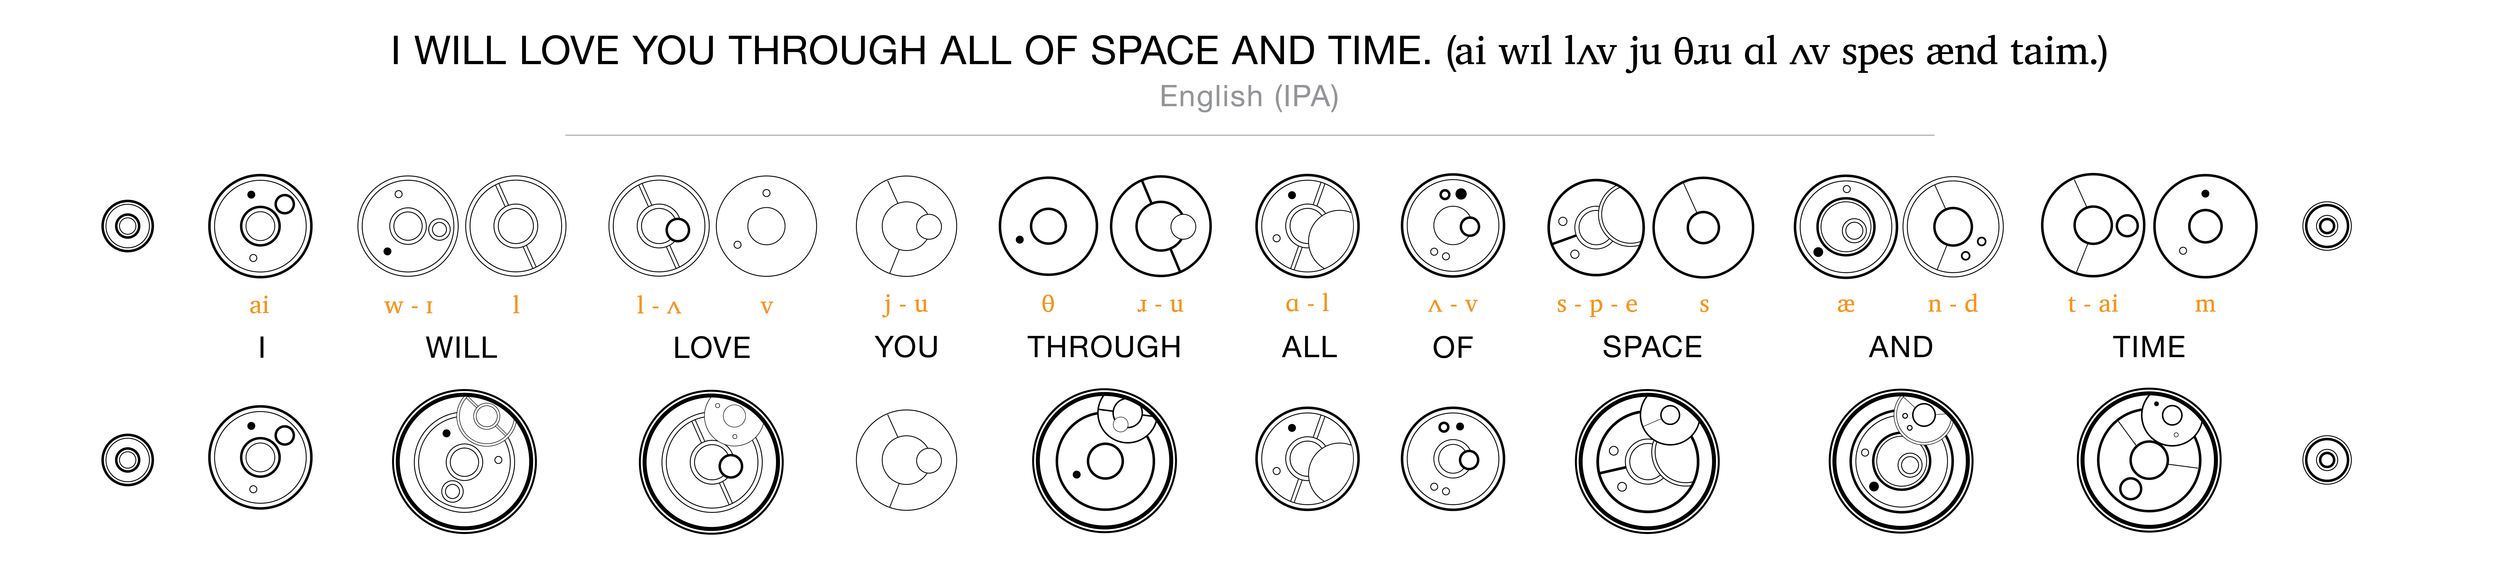 IWillLoveYouThroughAllOfSpaceAndTime-01.png